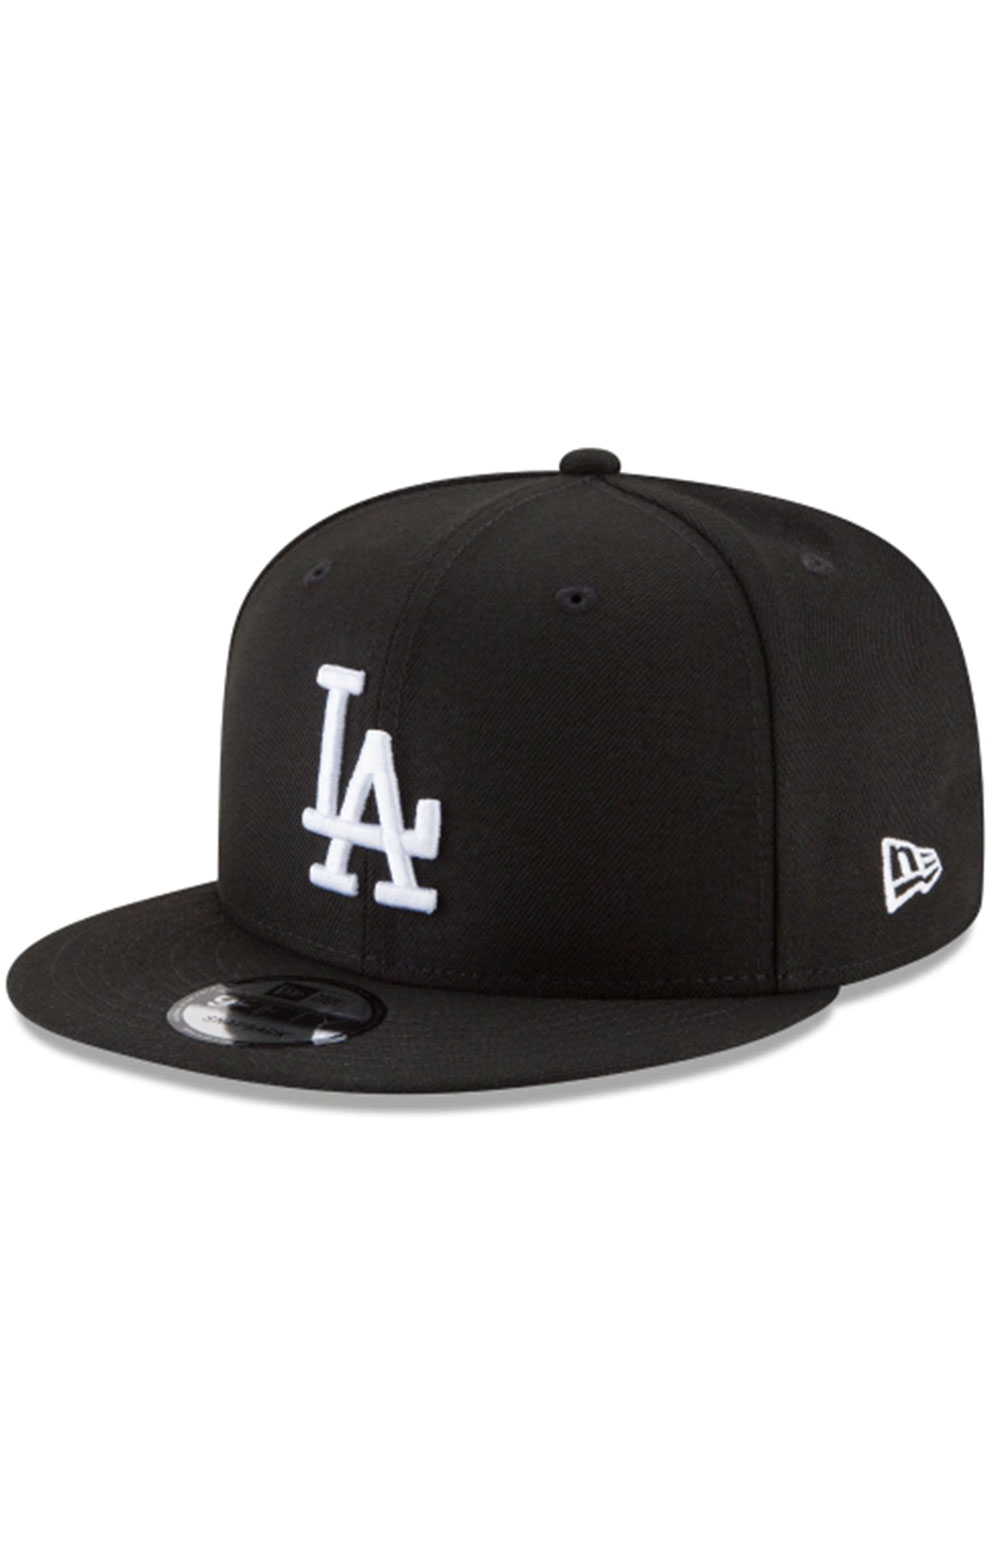 Los Angeles Dodgers Basic 9Fifty Snap-Back Hat - Black/White